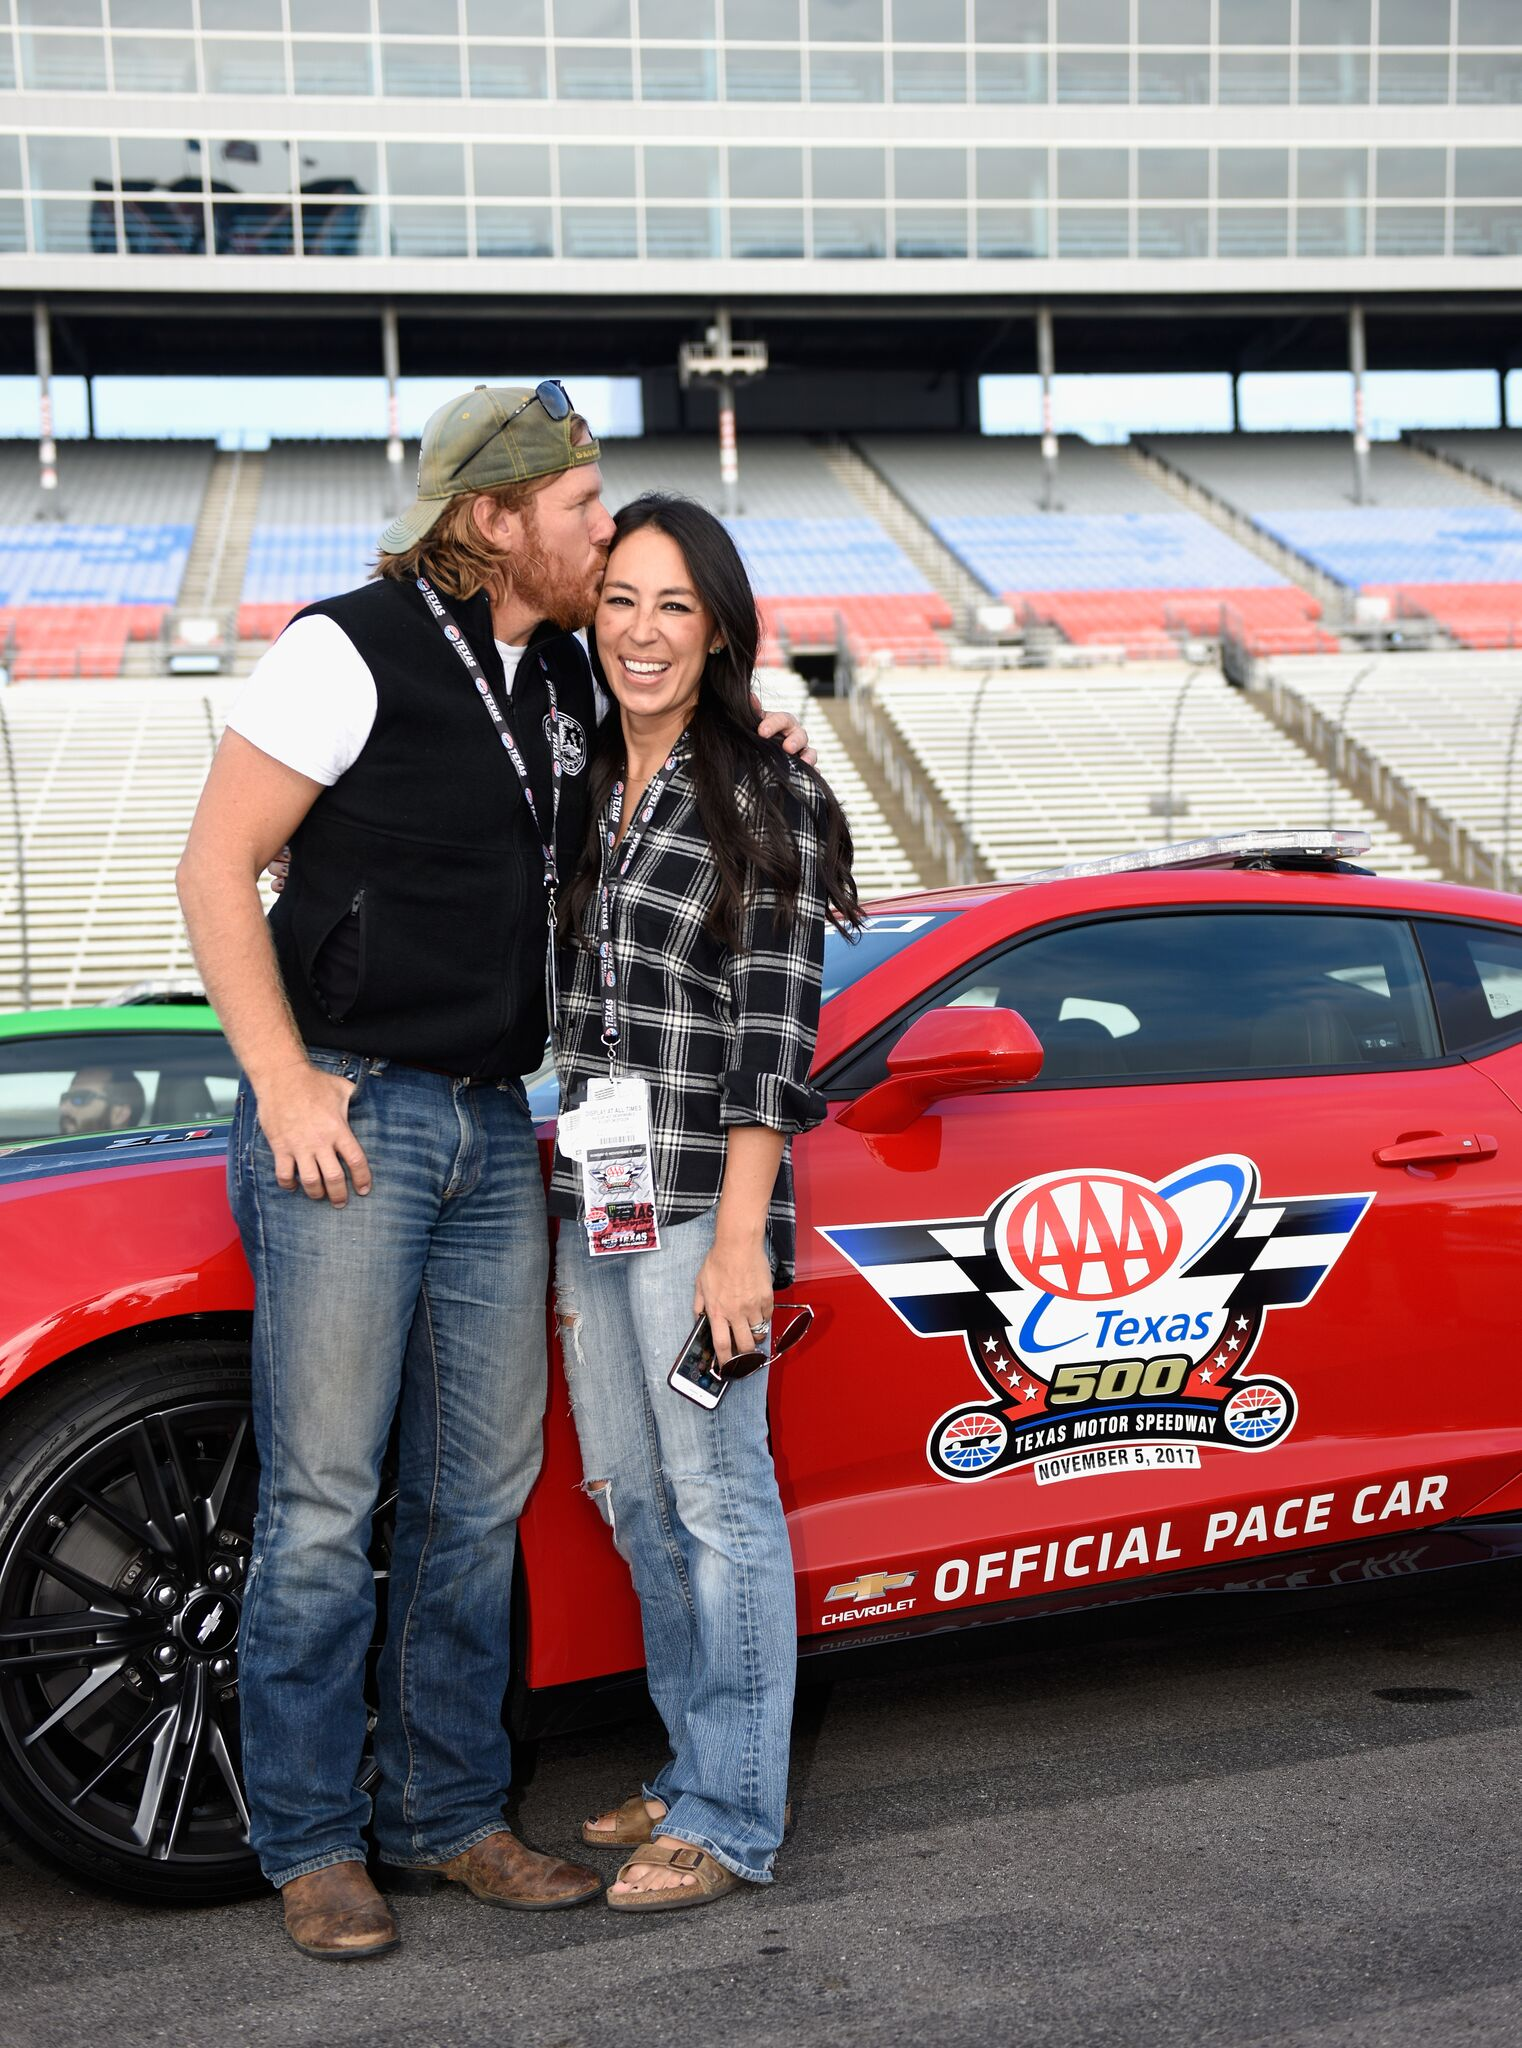 Chip and Joanna Gaines pose with the Monster Energy NASCAR Cup Series AAA Texas 500 pace car | Getty images / Global Images Ukraine